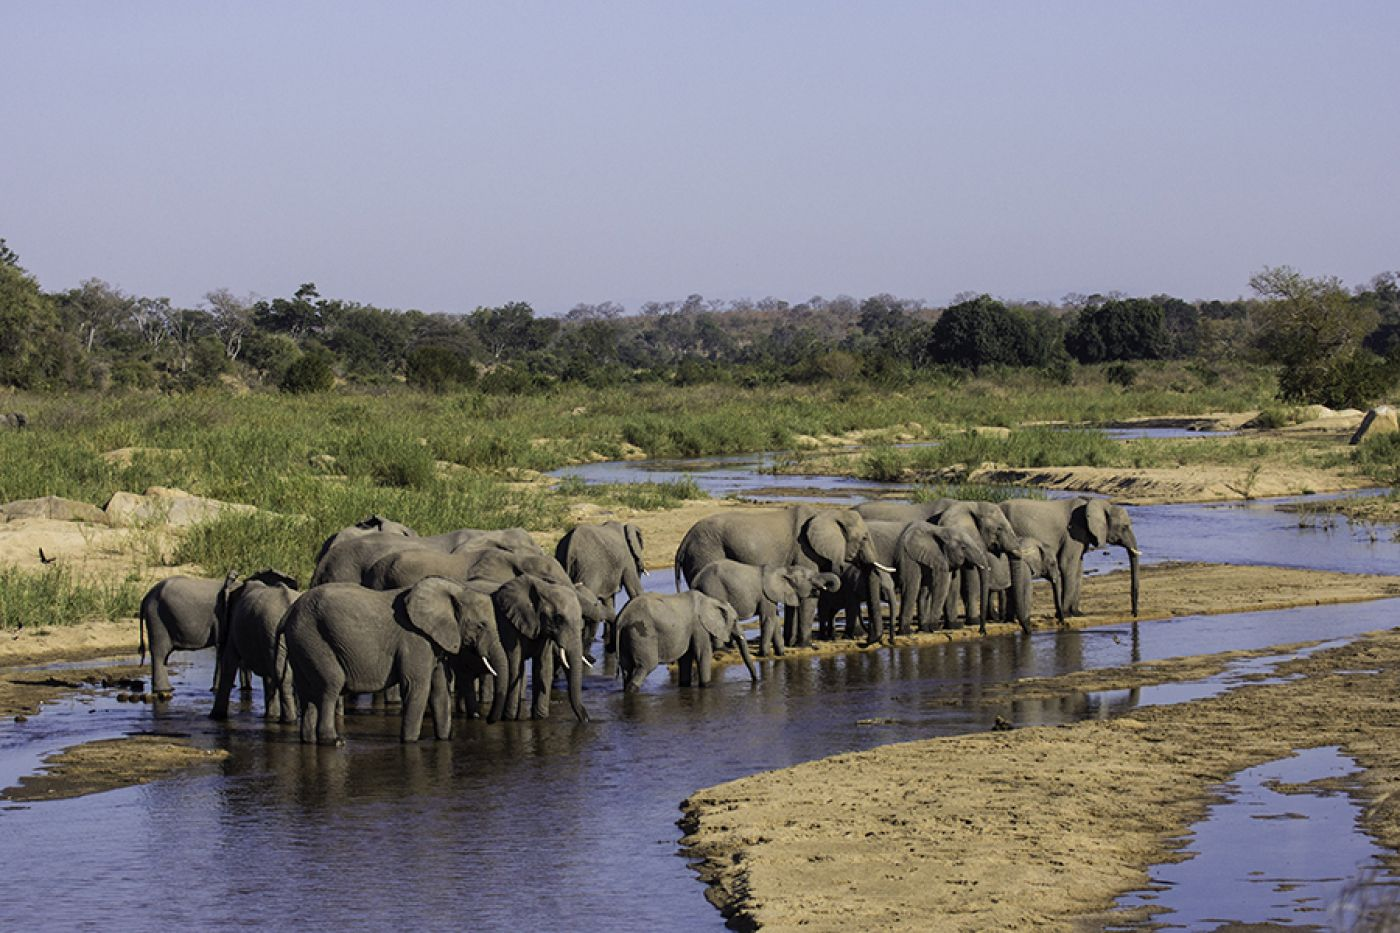 Elephants Visit The River Daily